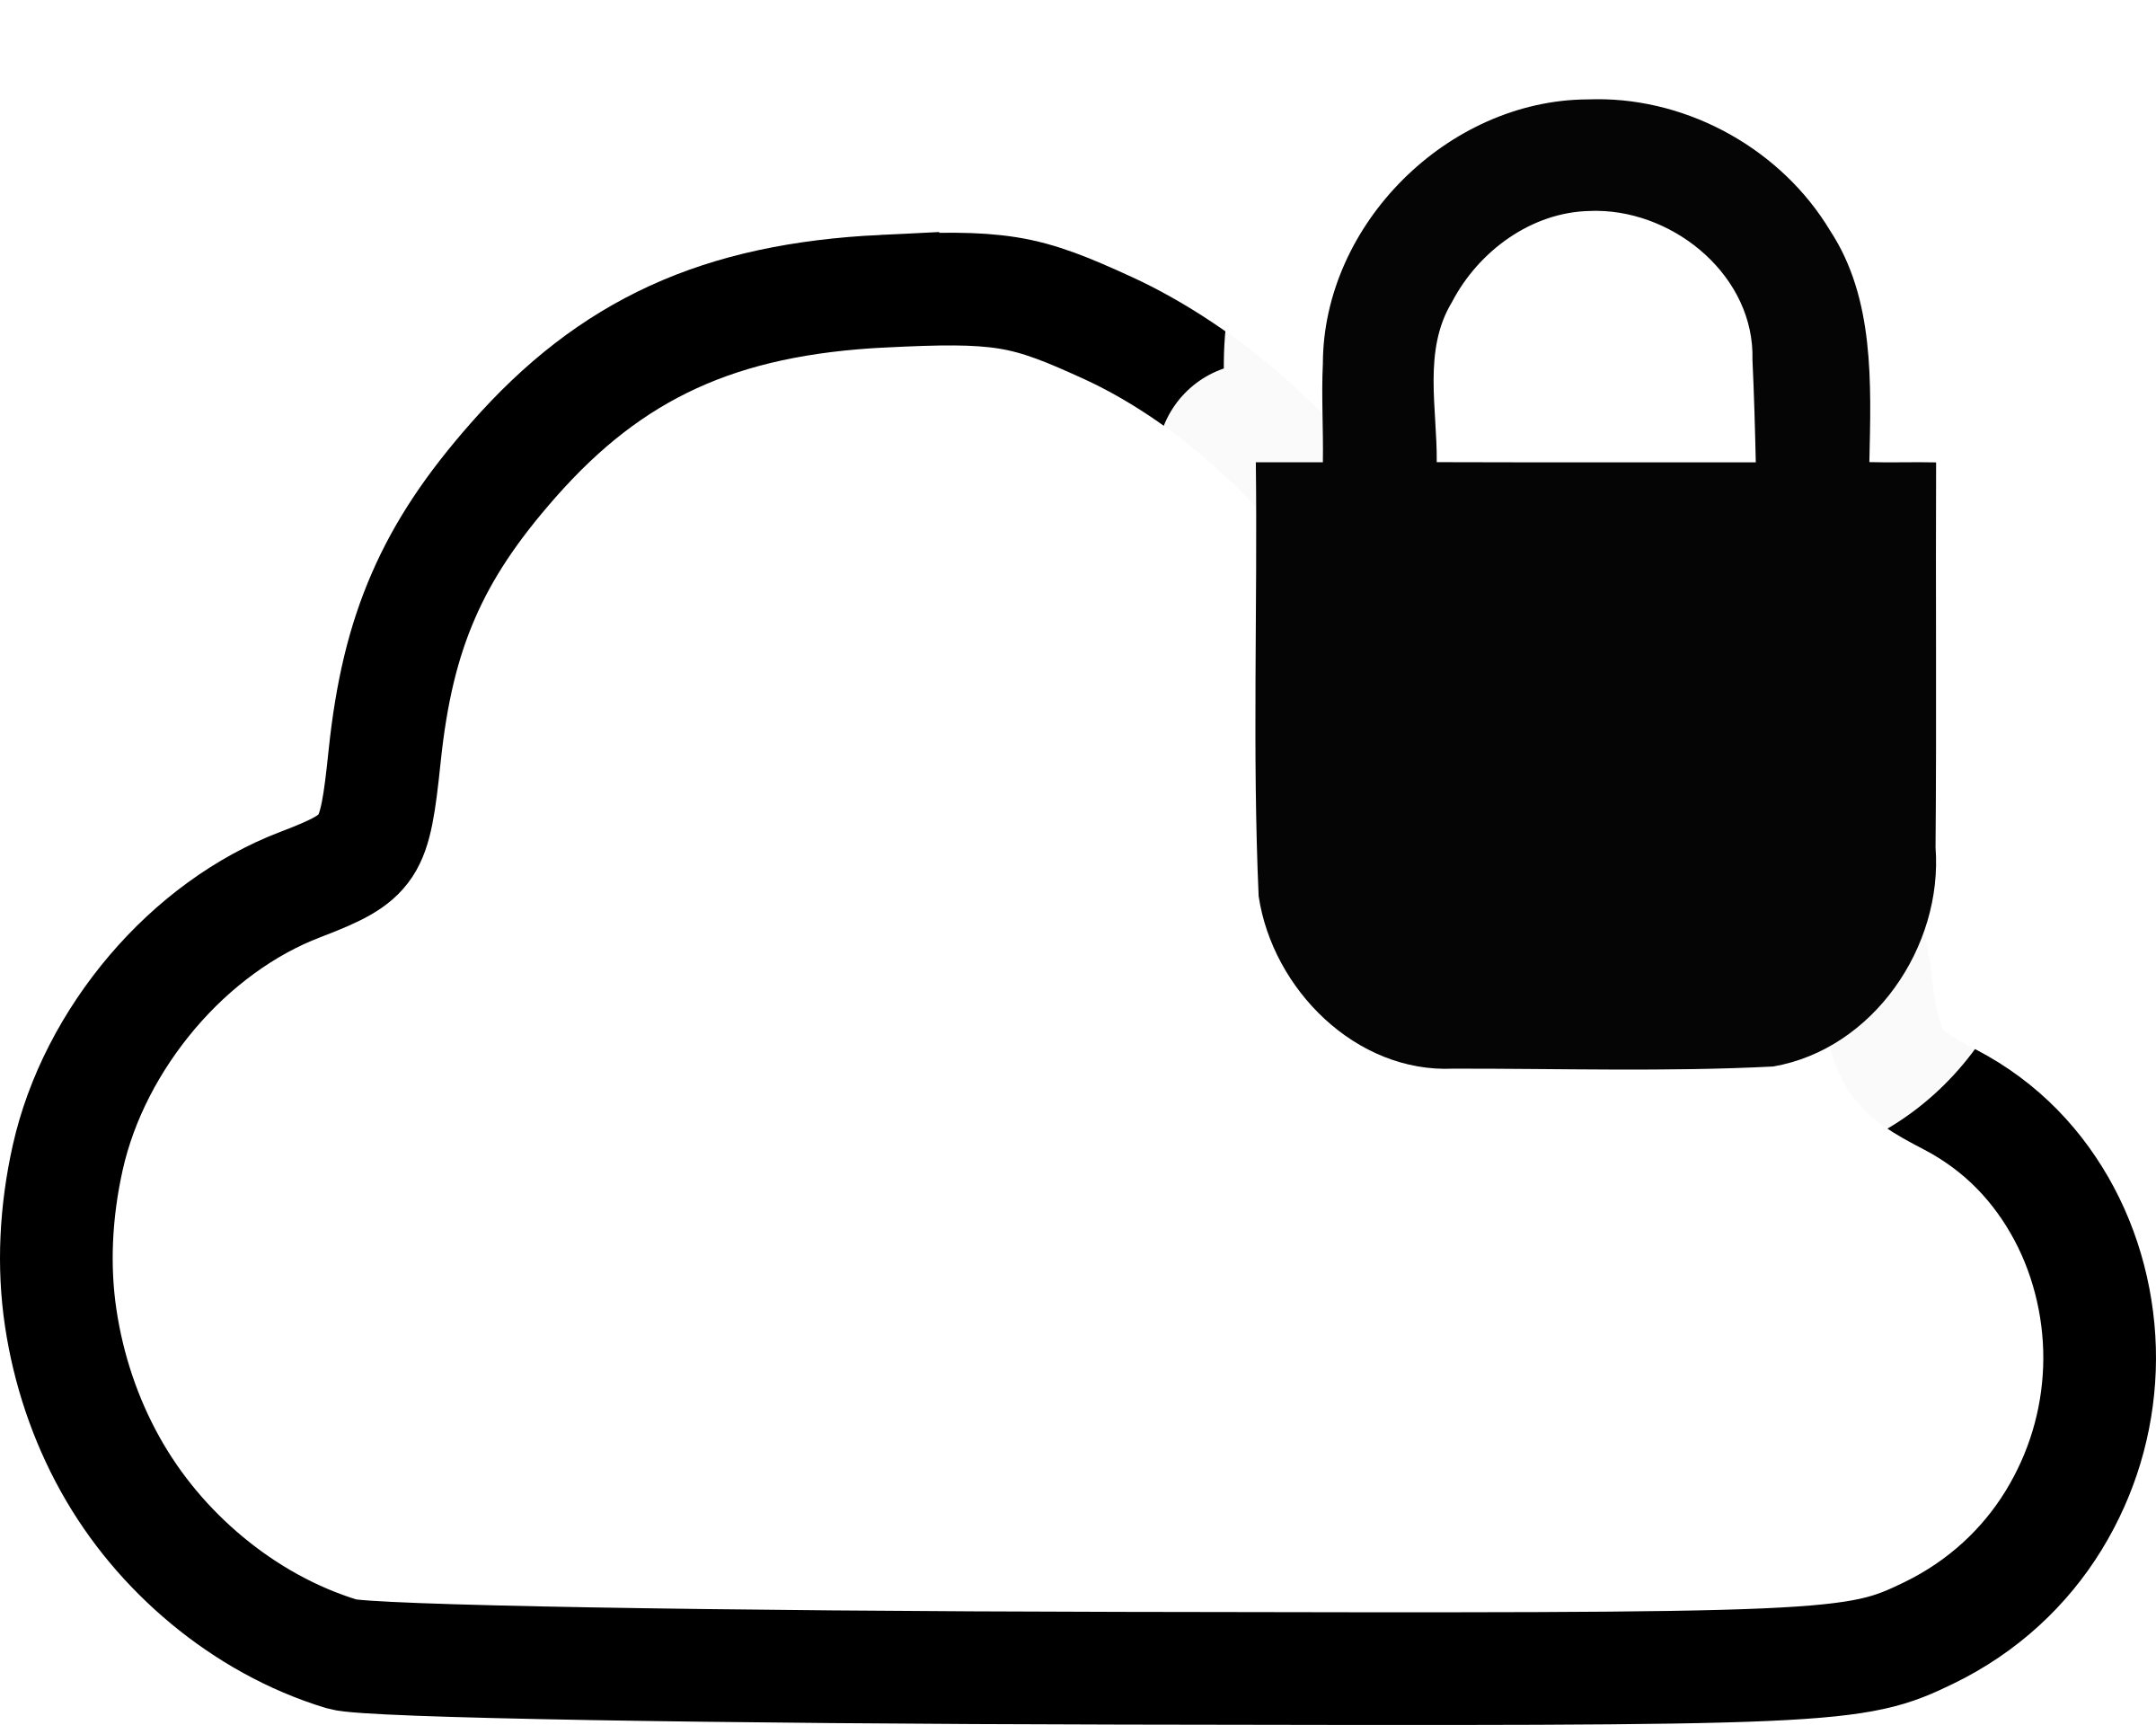 Private icon clipart clipart royalty free File:Private-cloud-icon.png - wiki.railML.org clipart royalty free